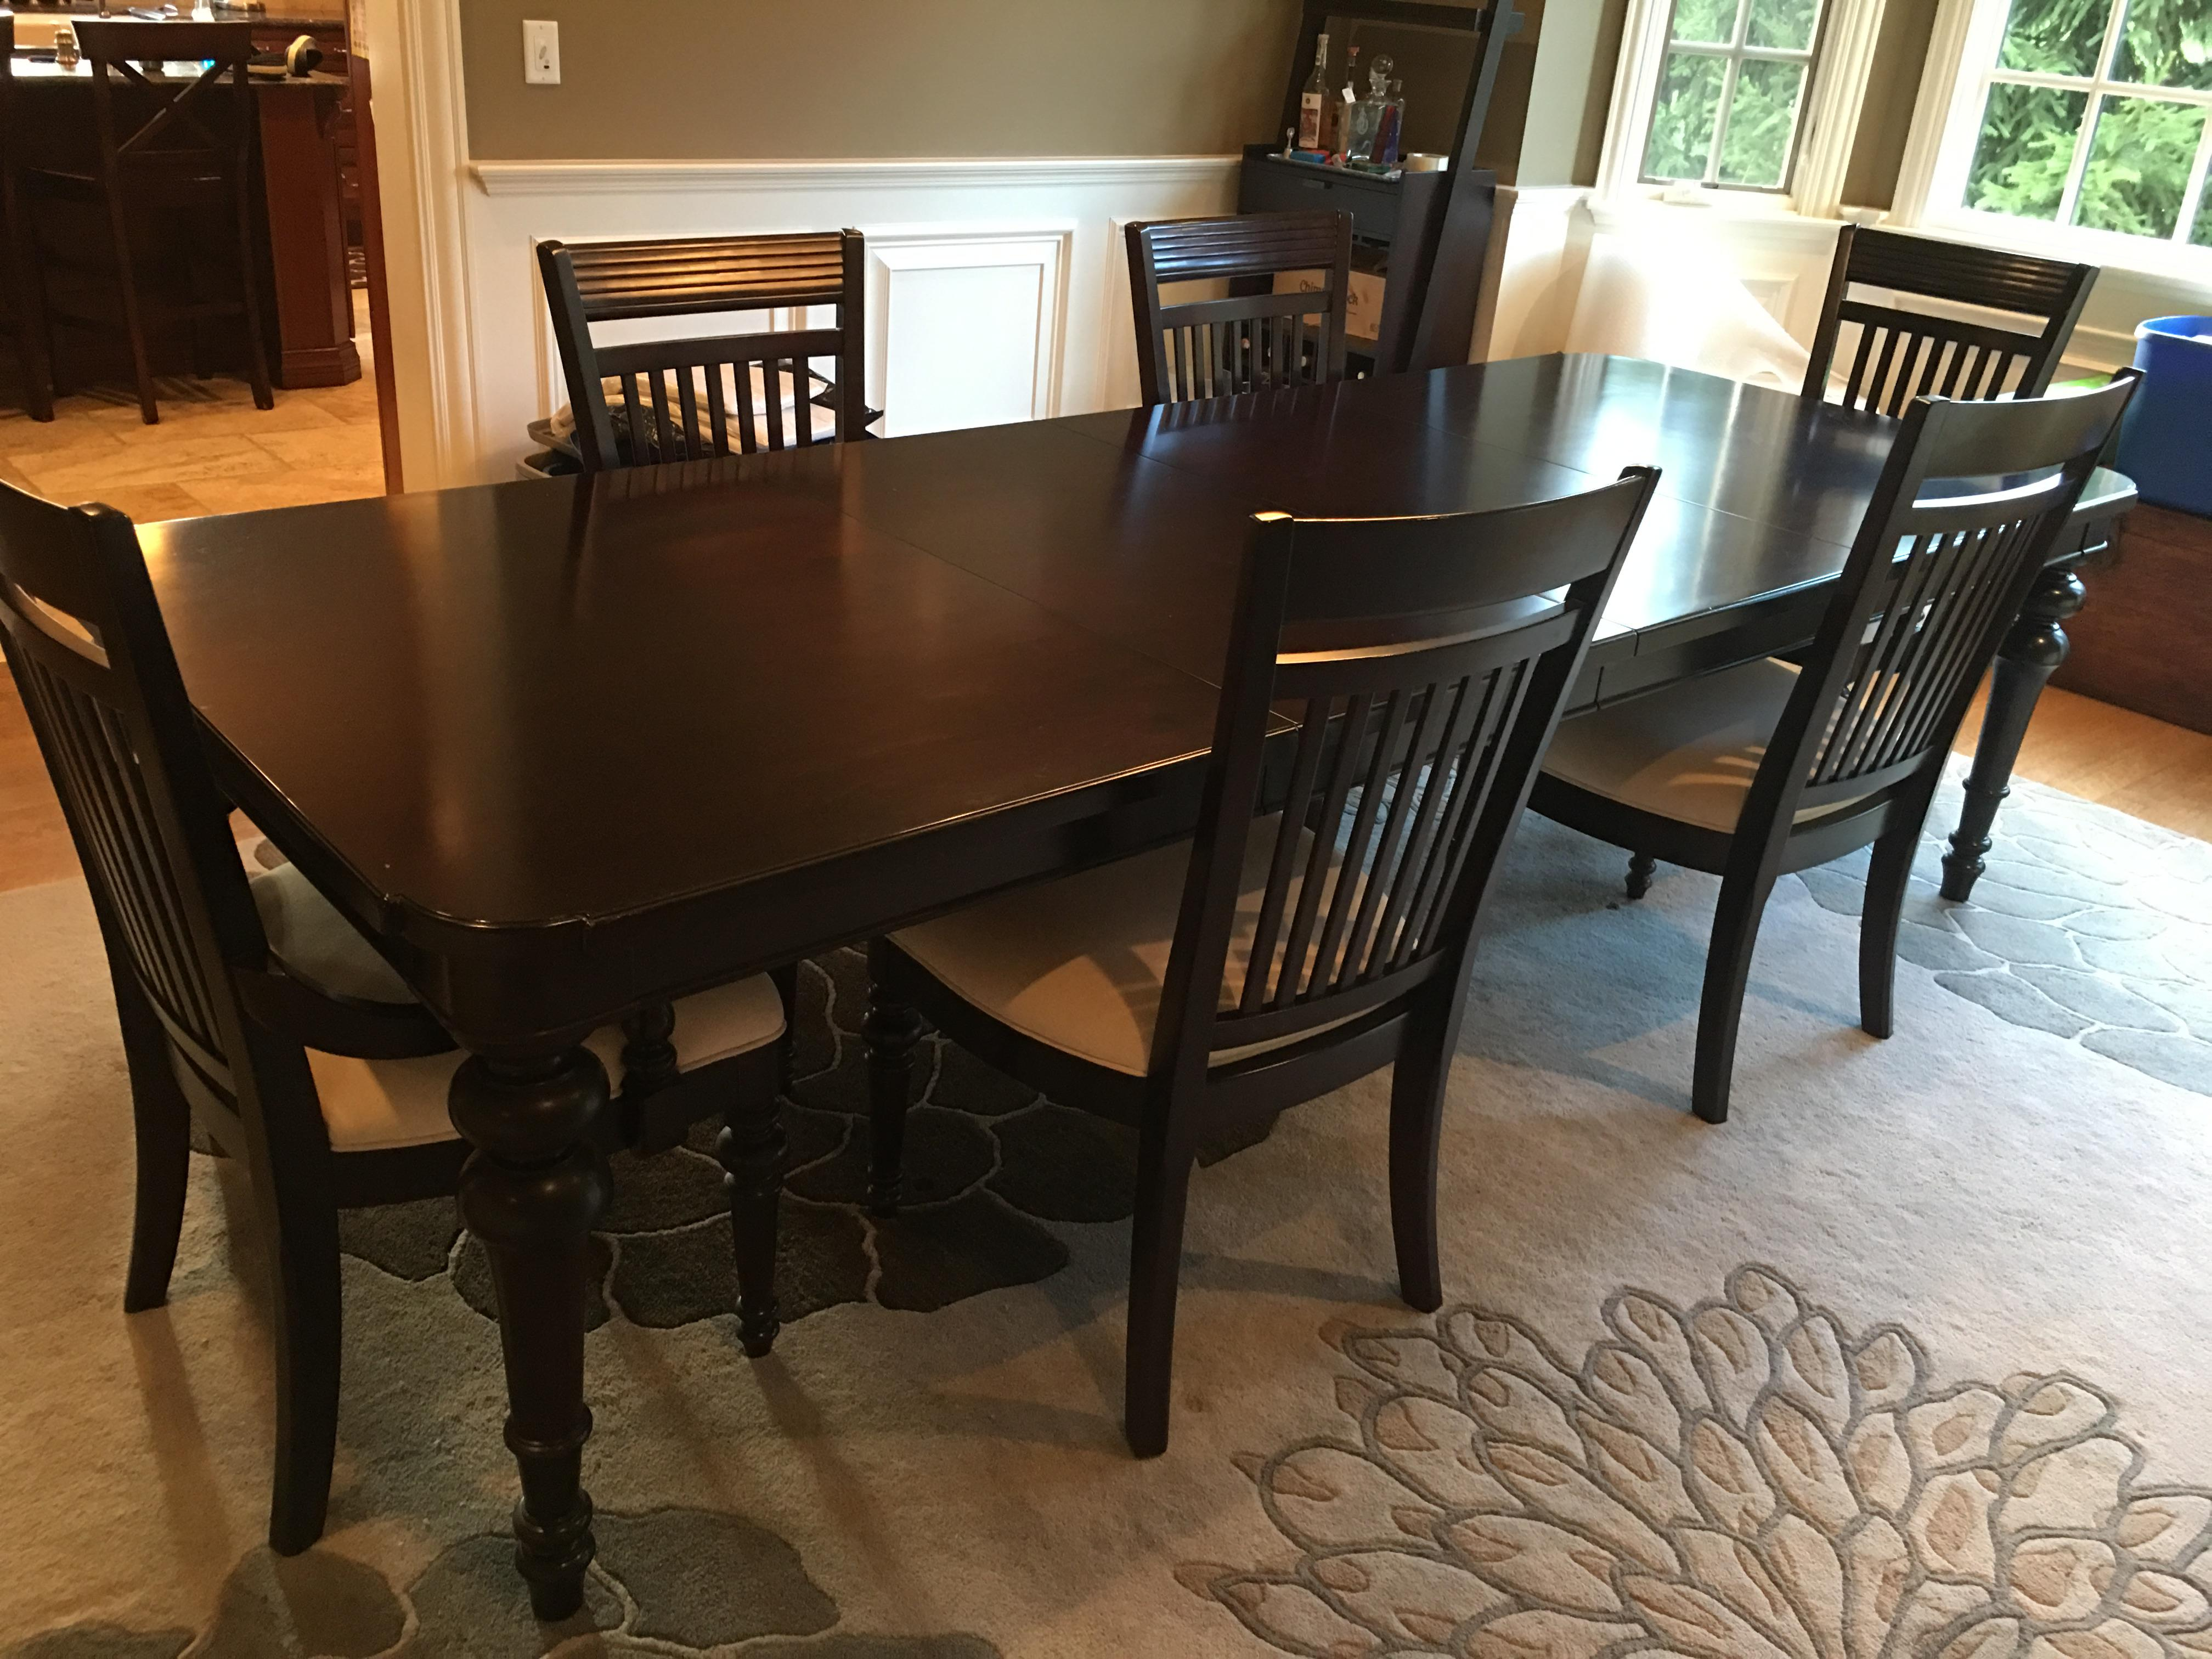 Black Mahogany Dining Leaf Table amp 6 Chairs Set Chairish : black mahogany dining leaf table and 6 chairs set 5259aspectfitampwidth640ampheight640 from www.chairish.com size 640 x 640 jpeg 56kB